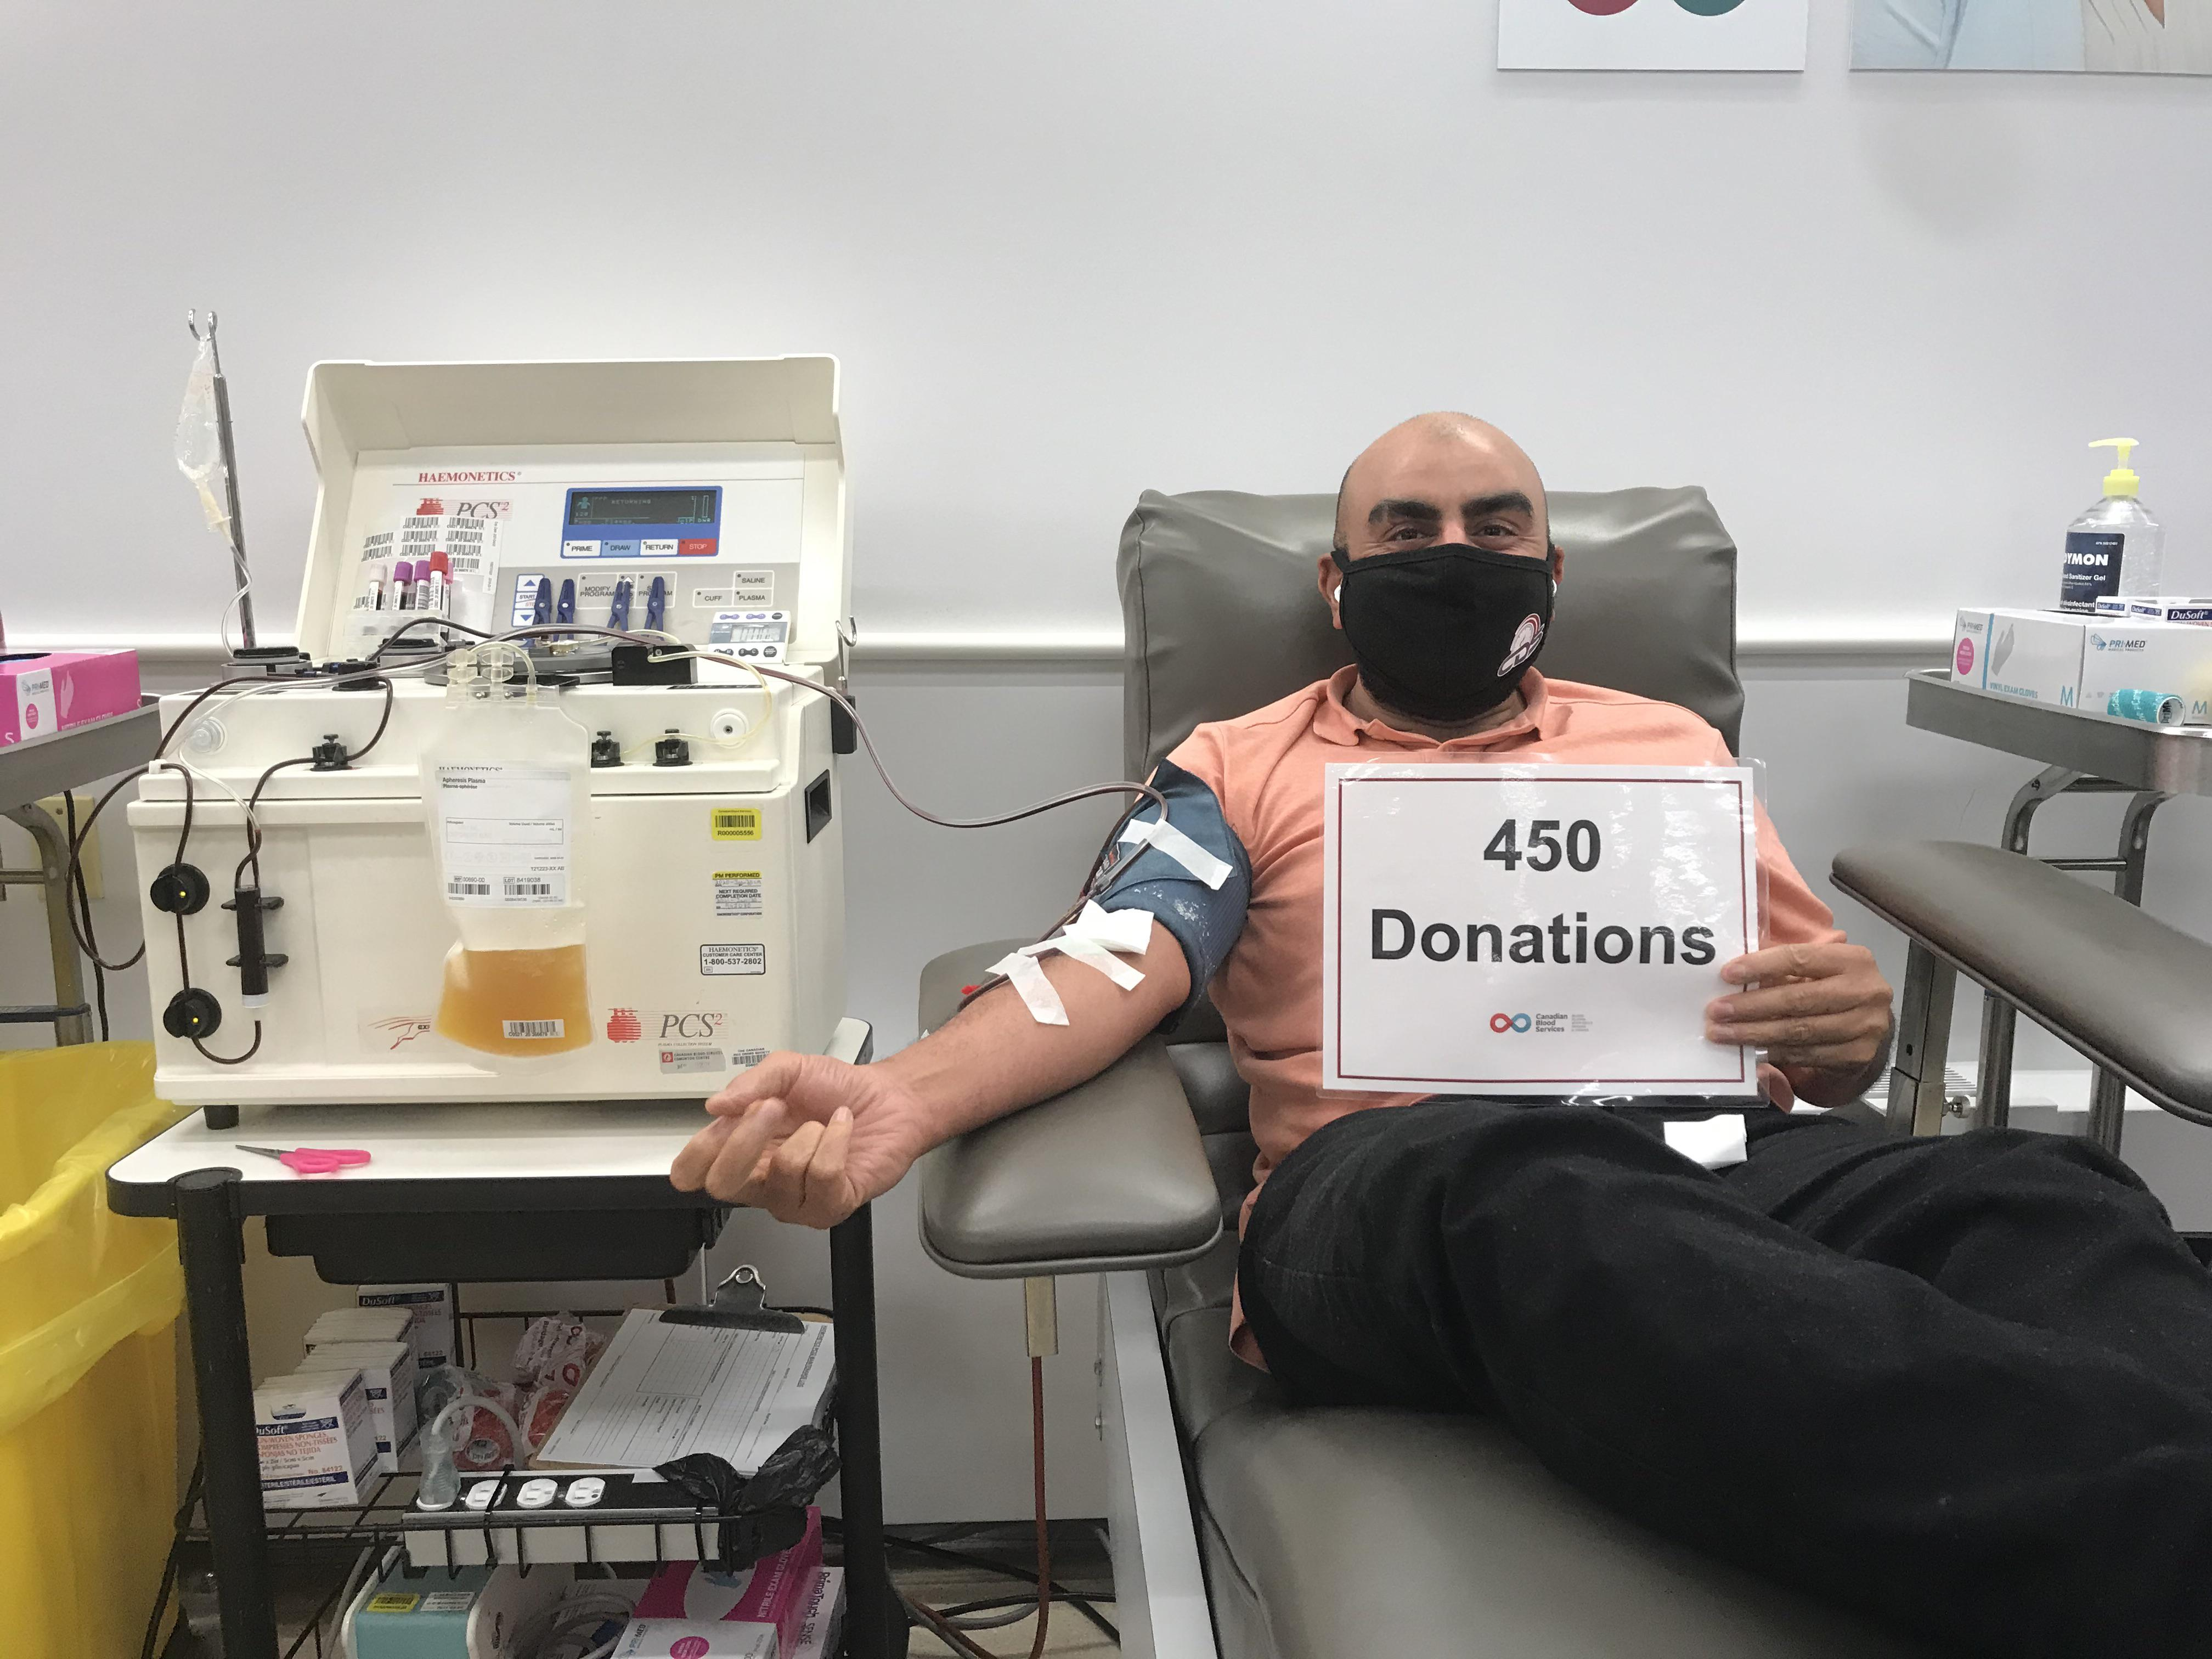 [Image] I've been donating blood plasma at Canadian Blood Services since I was 19. Now I'm 37 and I reached 450 donations. Every donation saves lives, so get out there and donate!